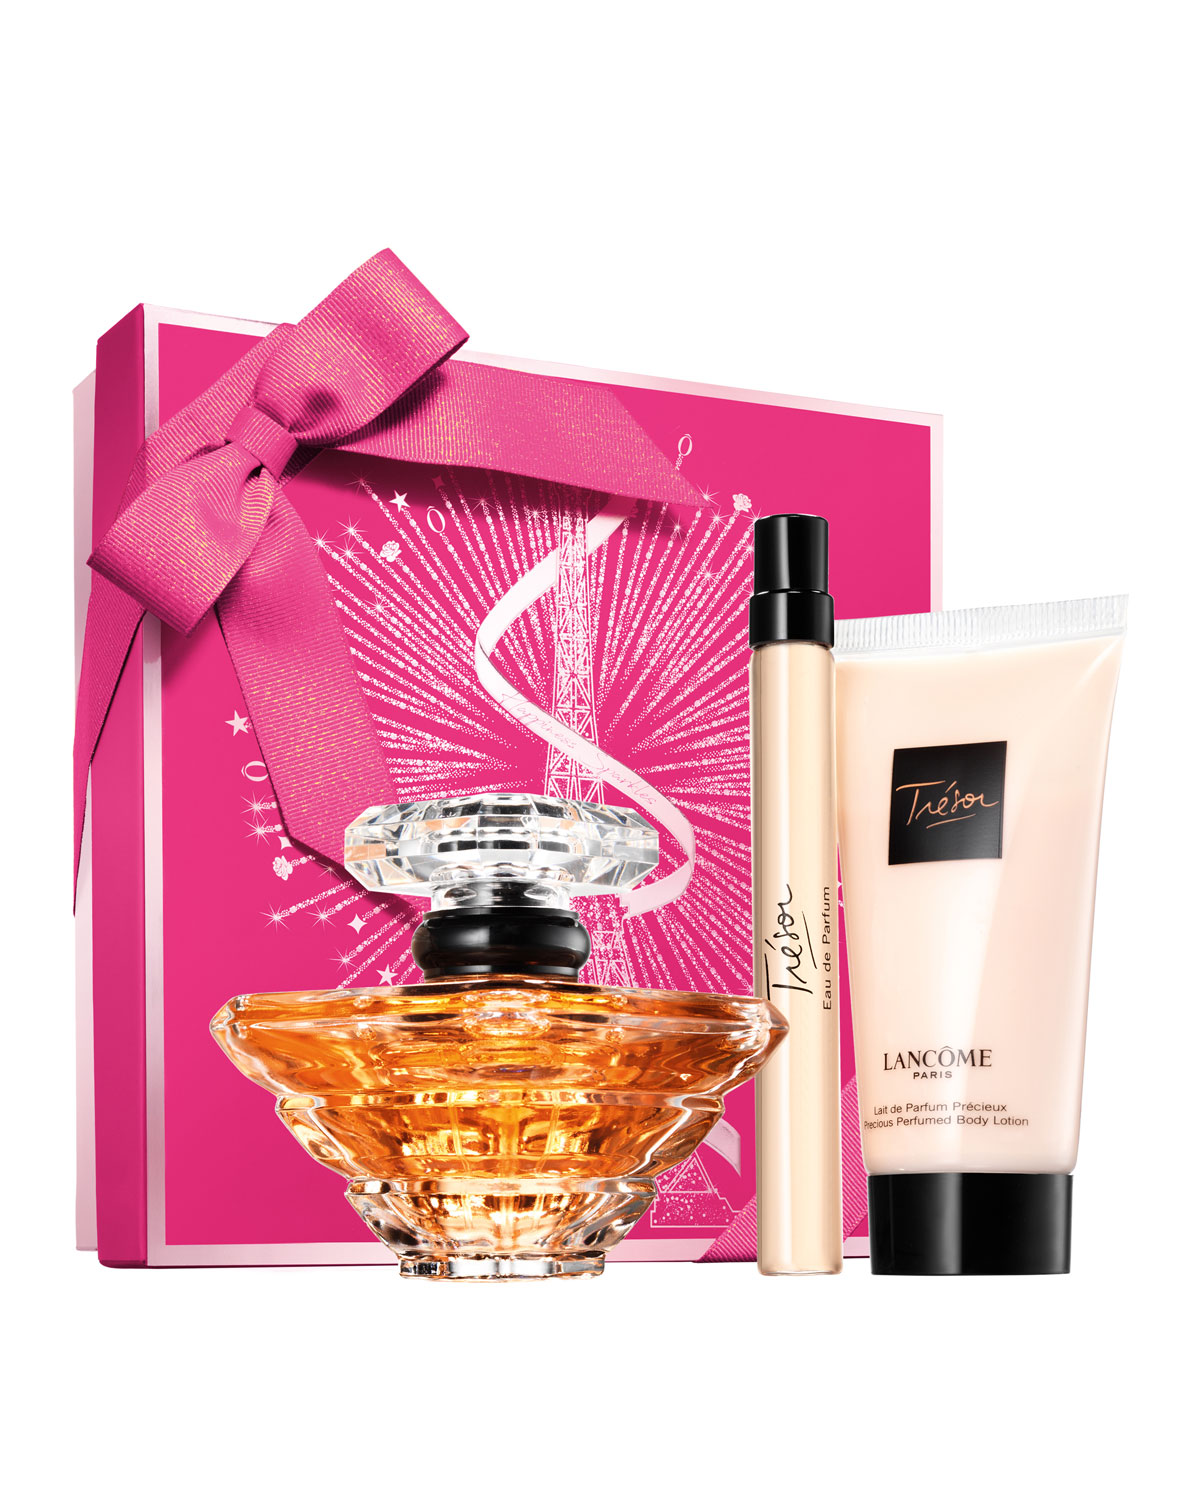 Lancôme TR & #233SOR MOMENTS SET HOLIDAY COLLECTION ($116 VALUE)